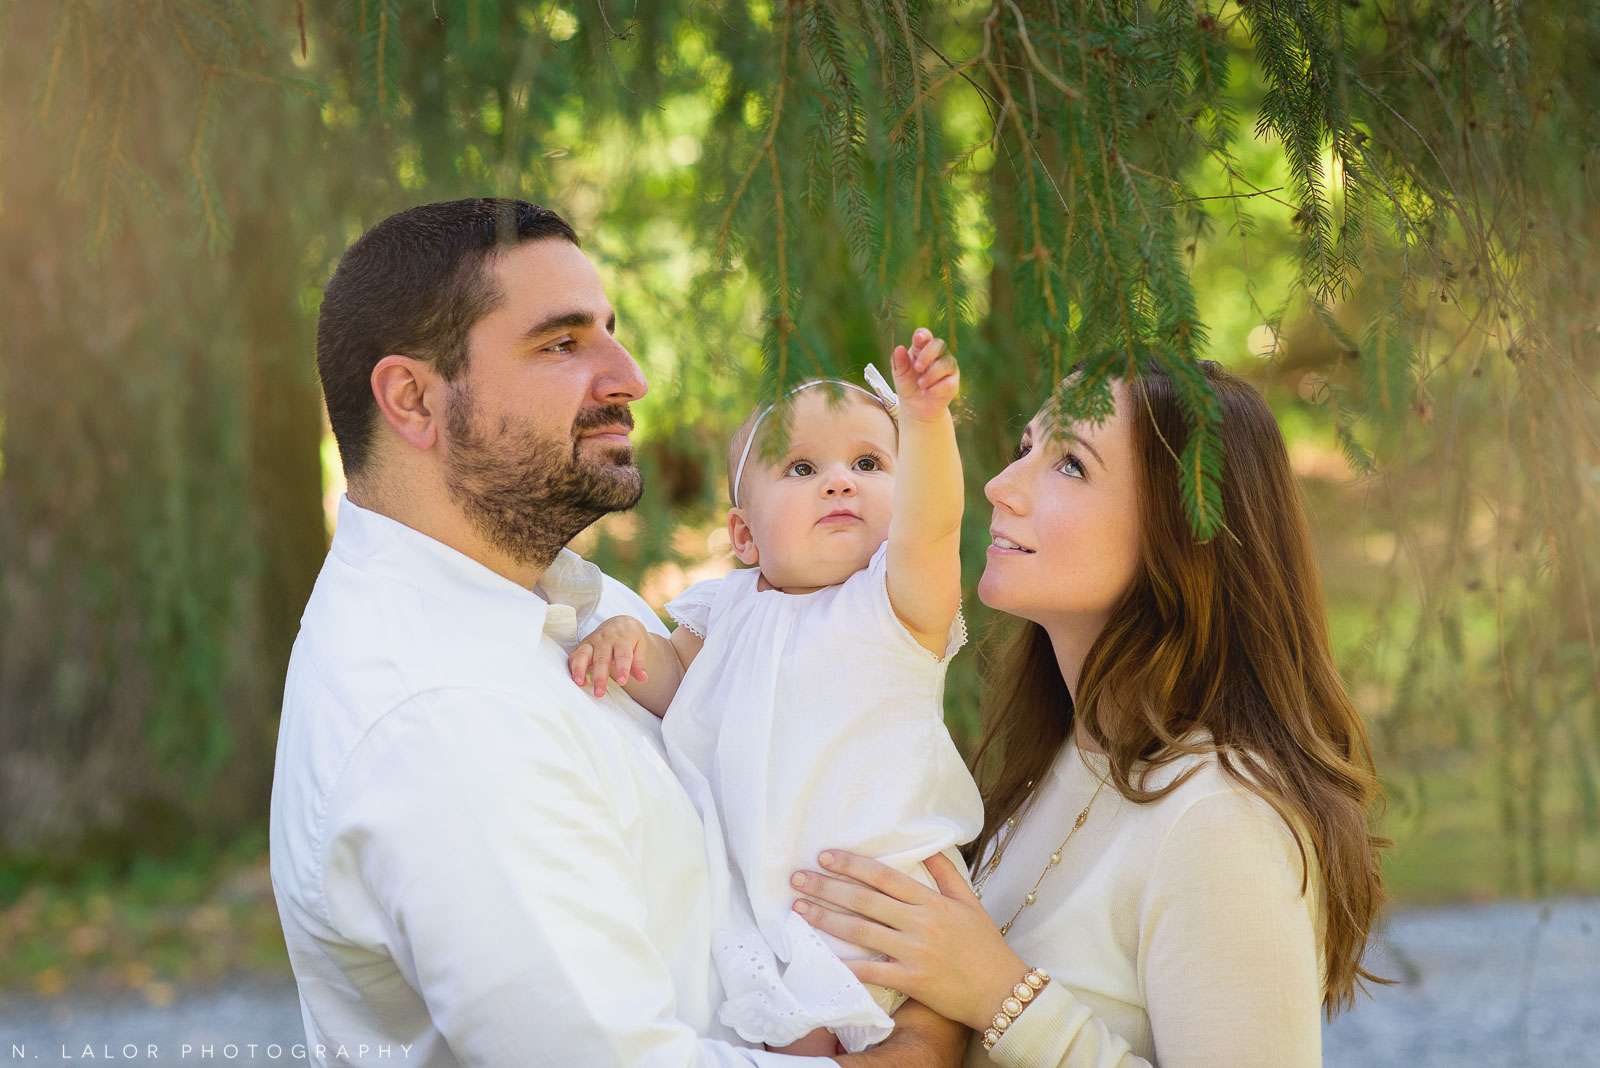 1-year old baby girl discovering the magical qualities of a pine tree. Lifestyle family photo by N. Lalor Photography.